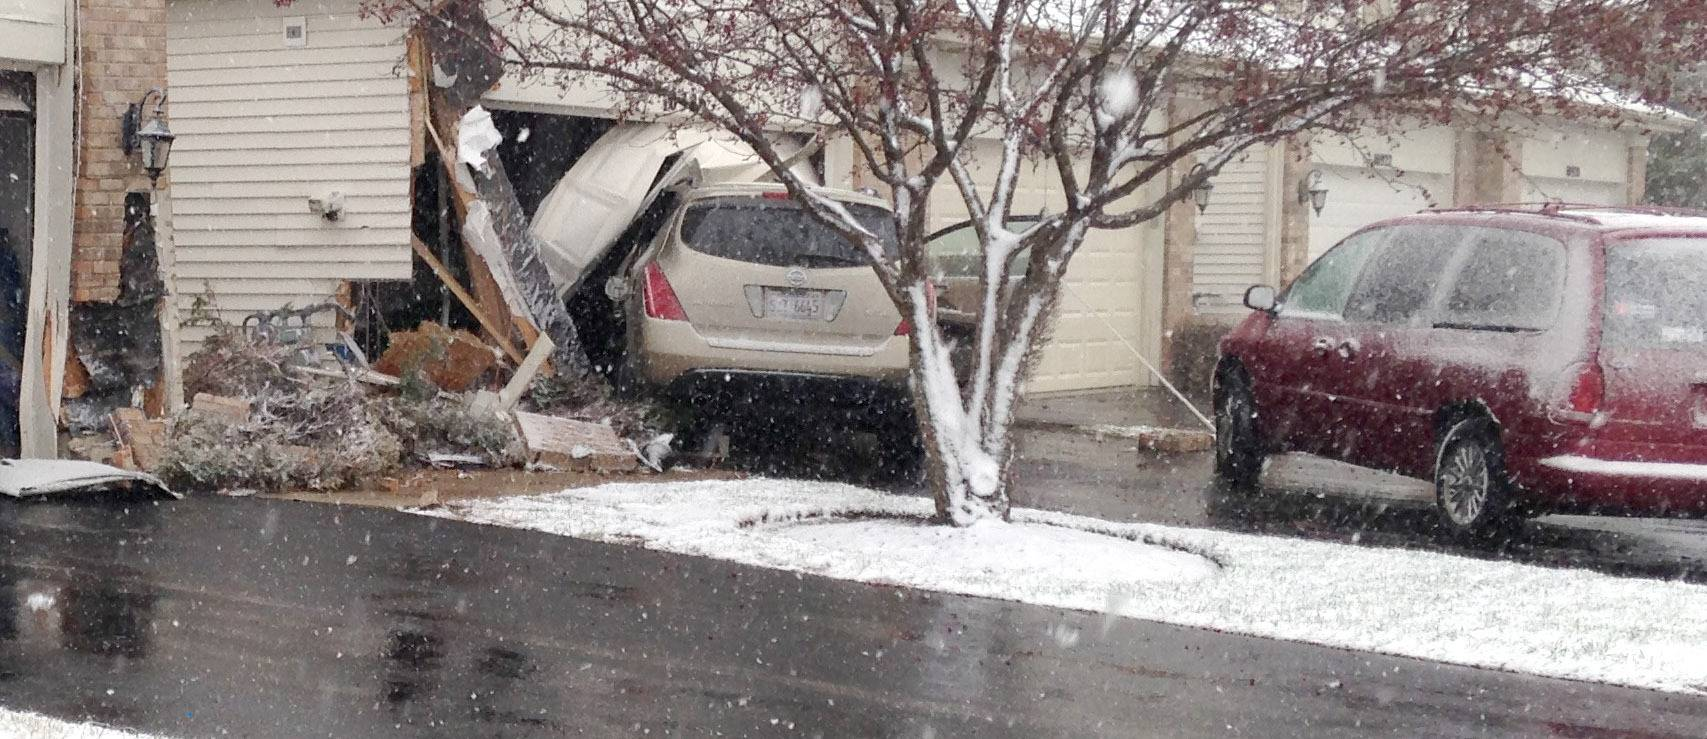 An SUV driven by an unlicensed Huntley teen crashed into two townhouses just before 4:45 p.m. Monday on the 10900 block of Cape Cod Lane, authorities said.